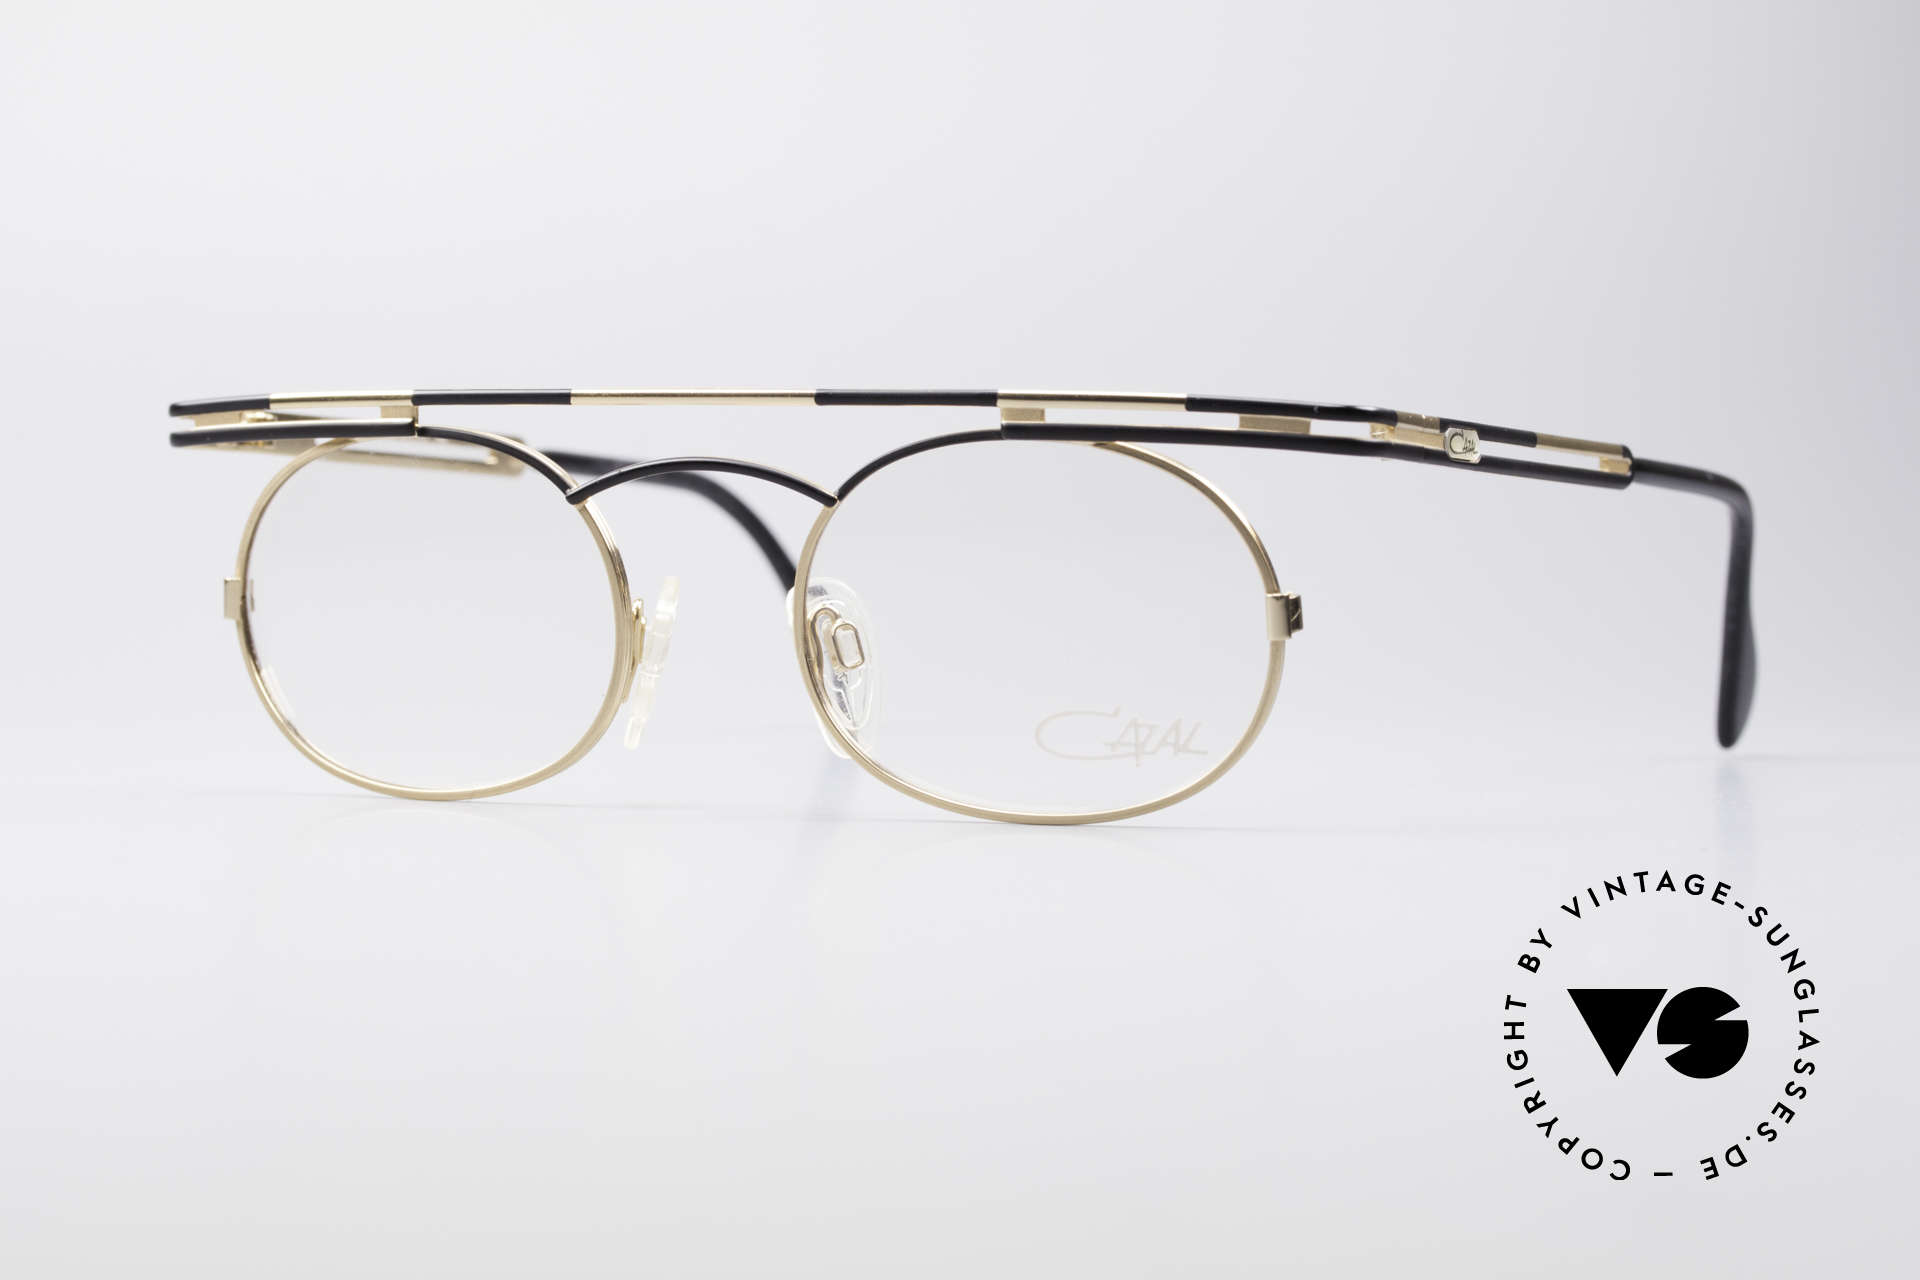 Cazal 761 Vintage Frame NO Retro Glasses, expressive CAZAL vintage eyeglasses from app. 1997, Made for Men and Women